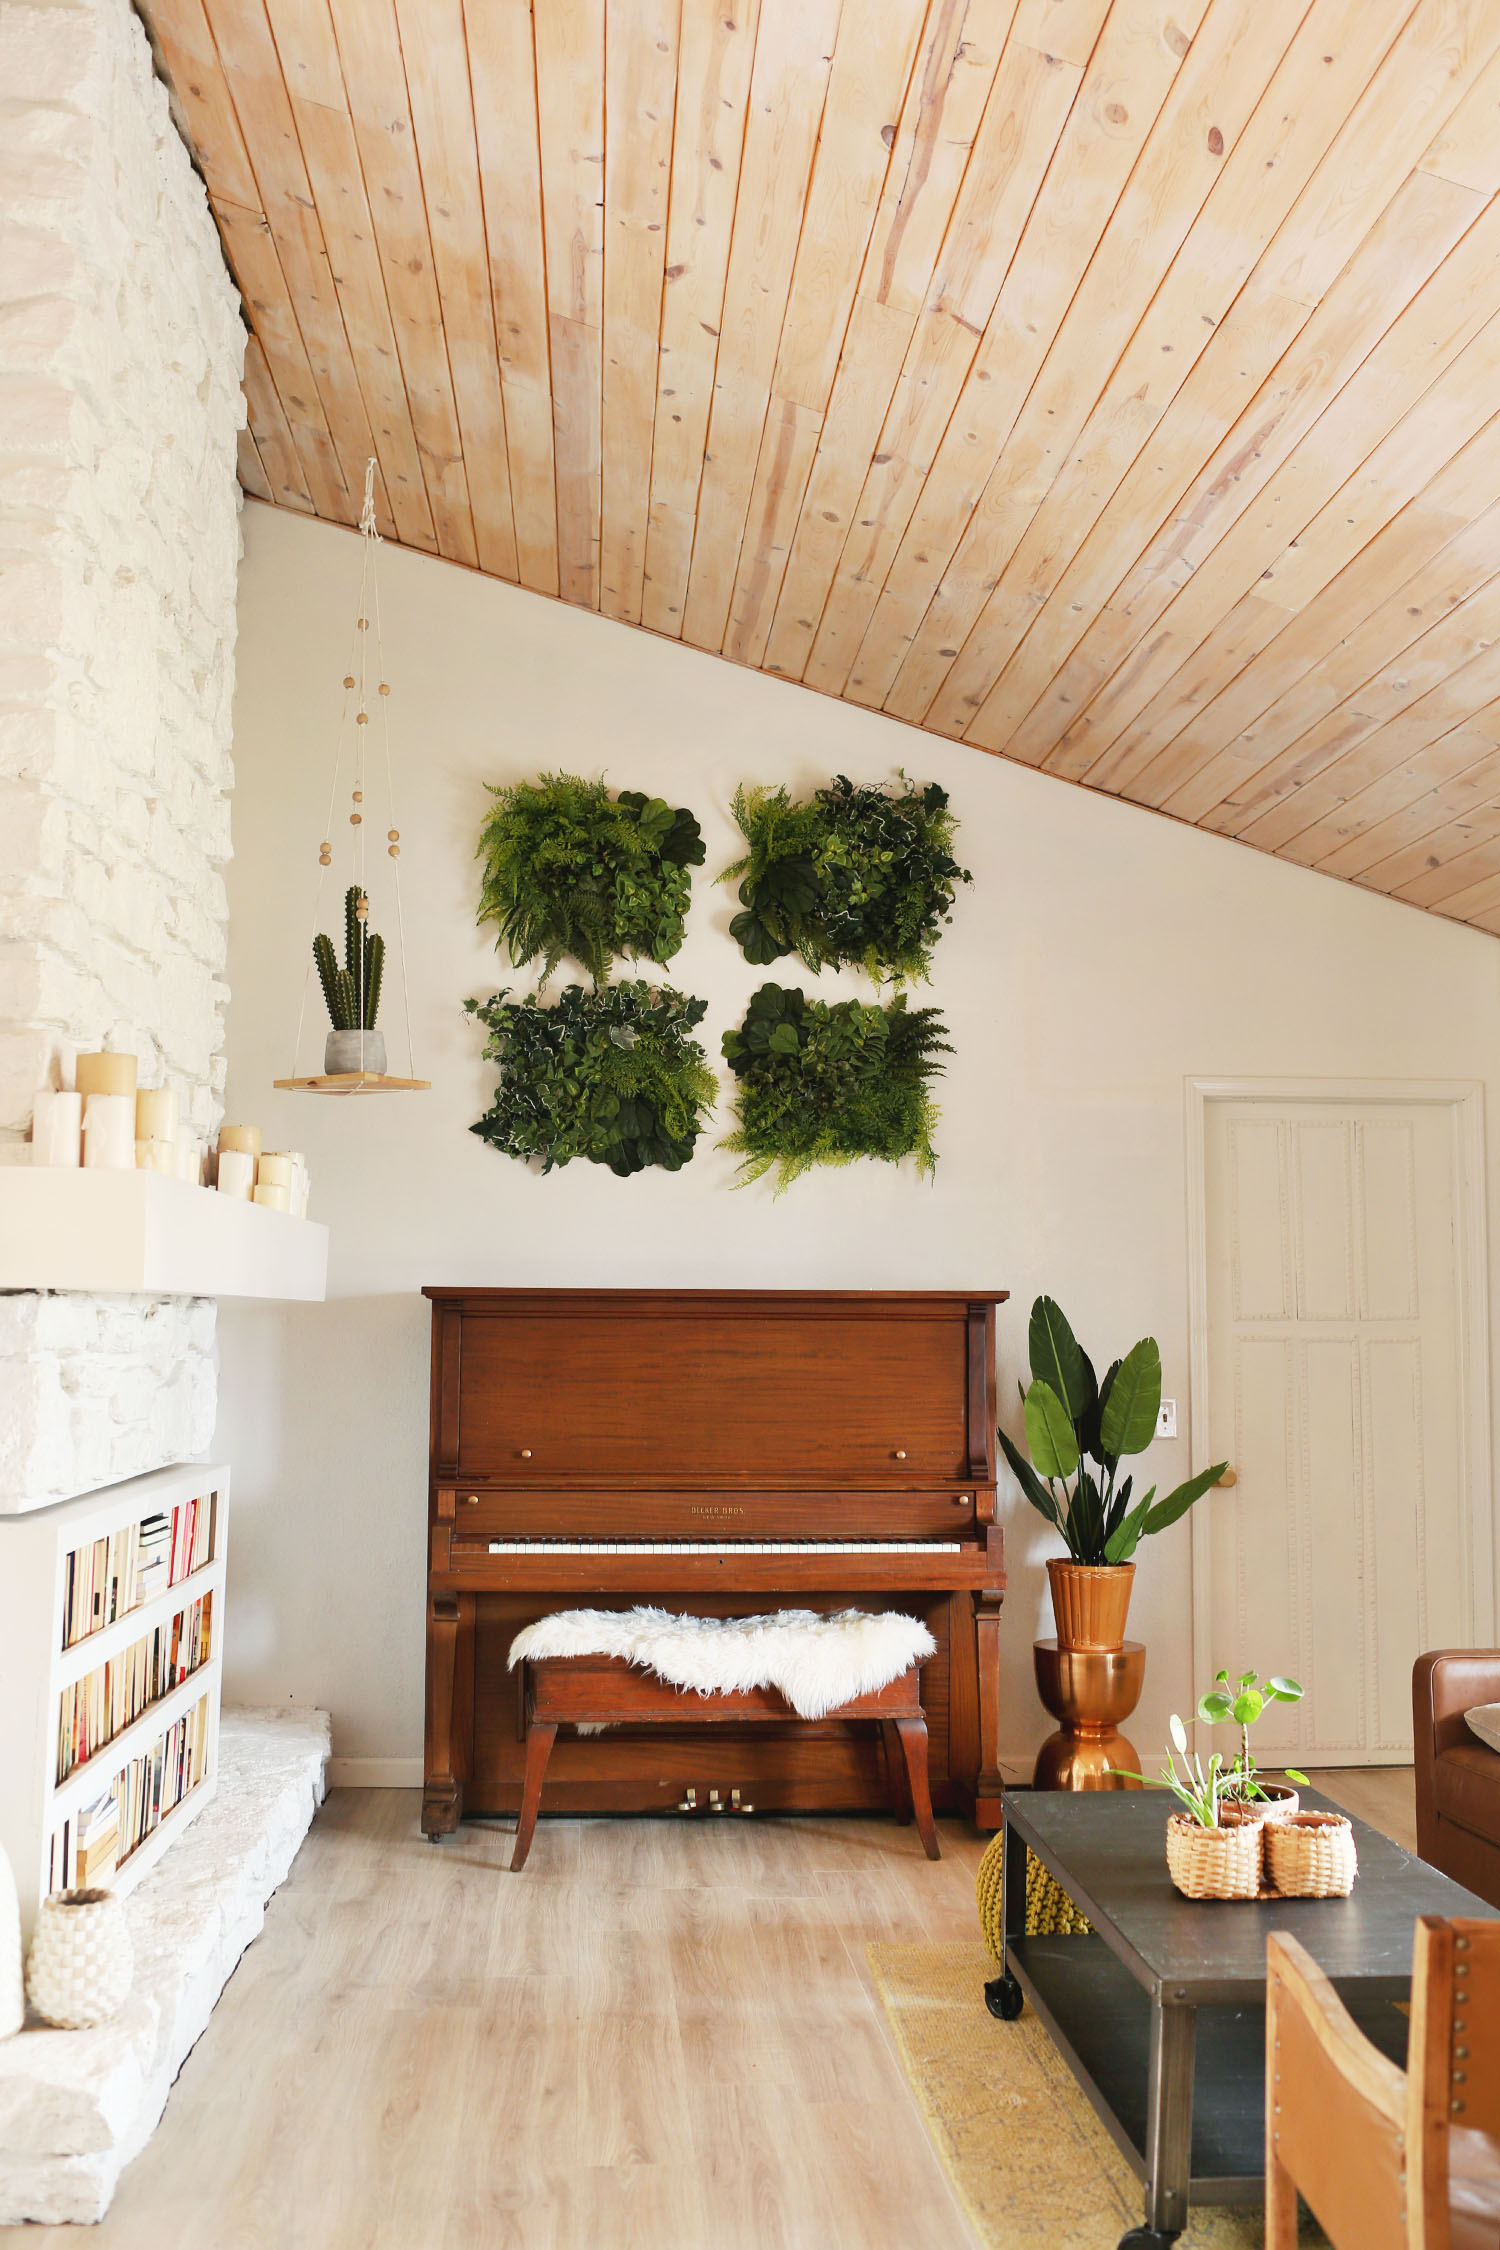 Easy DIY Living Wall Art